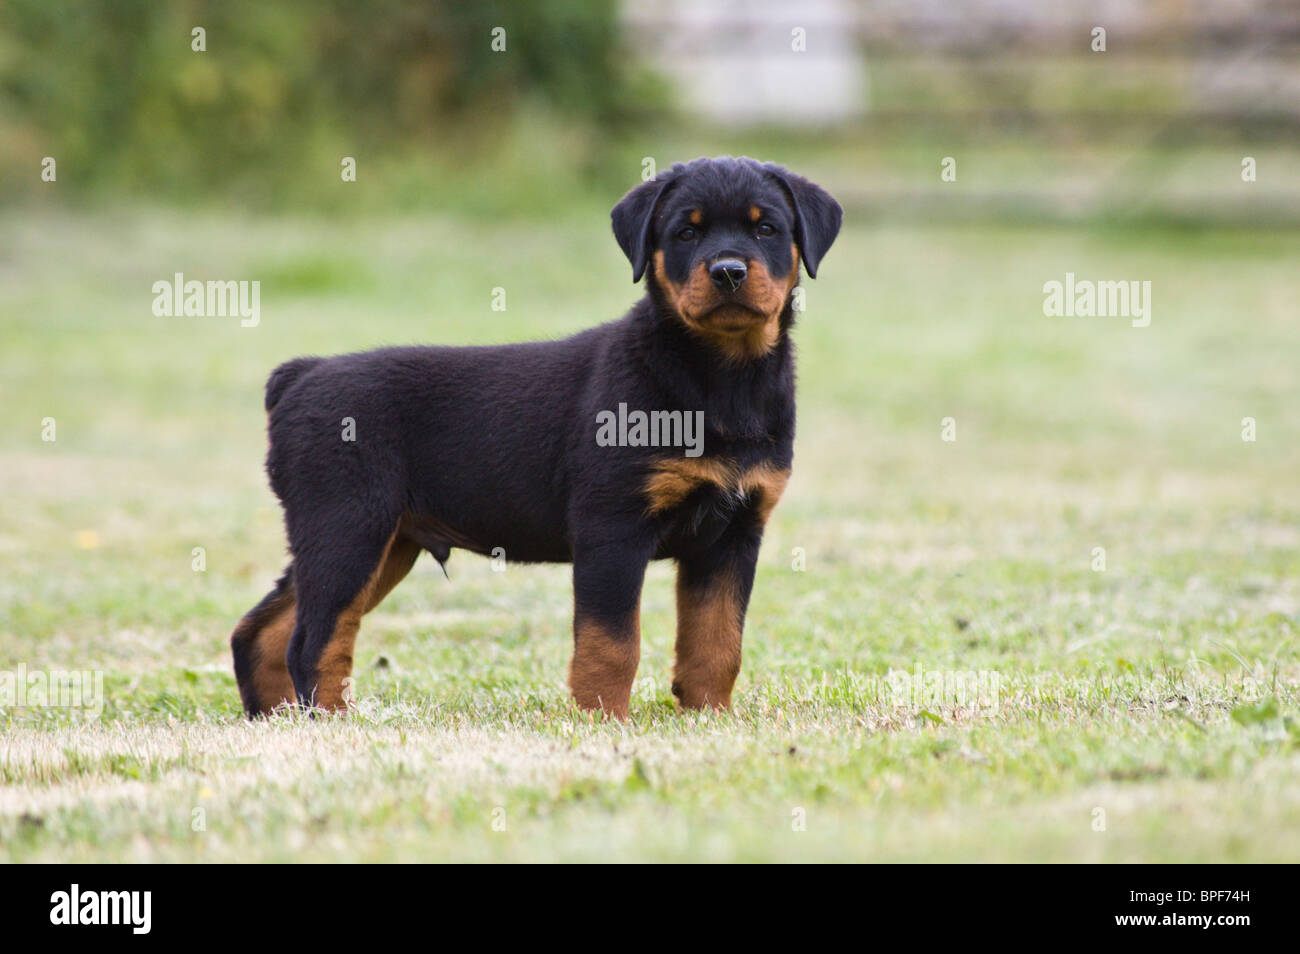 10 Week old Rottweiler puppy standing in a field Stock ...